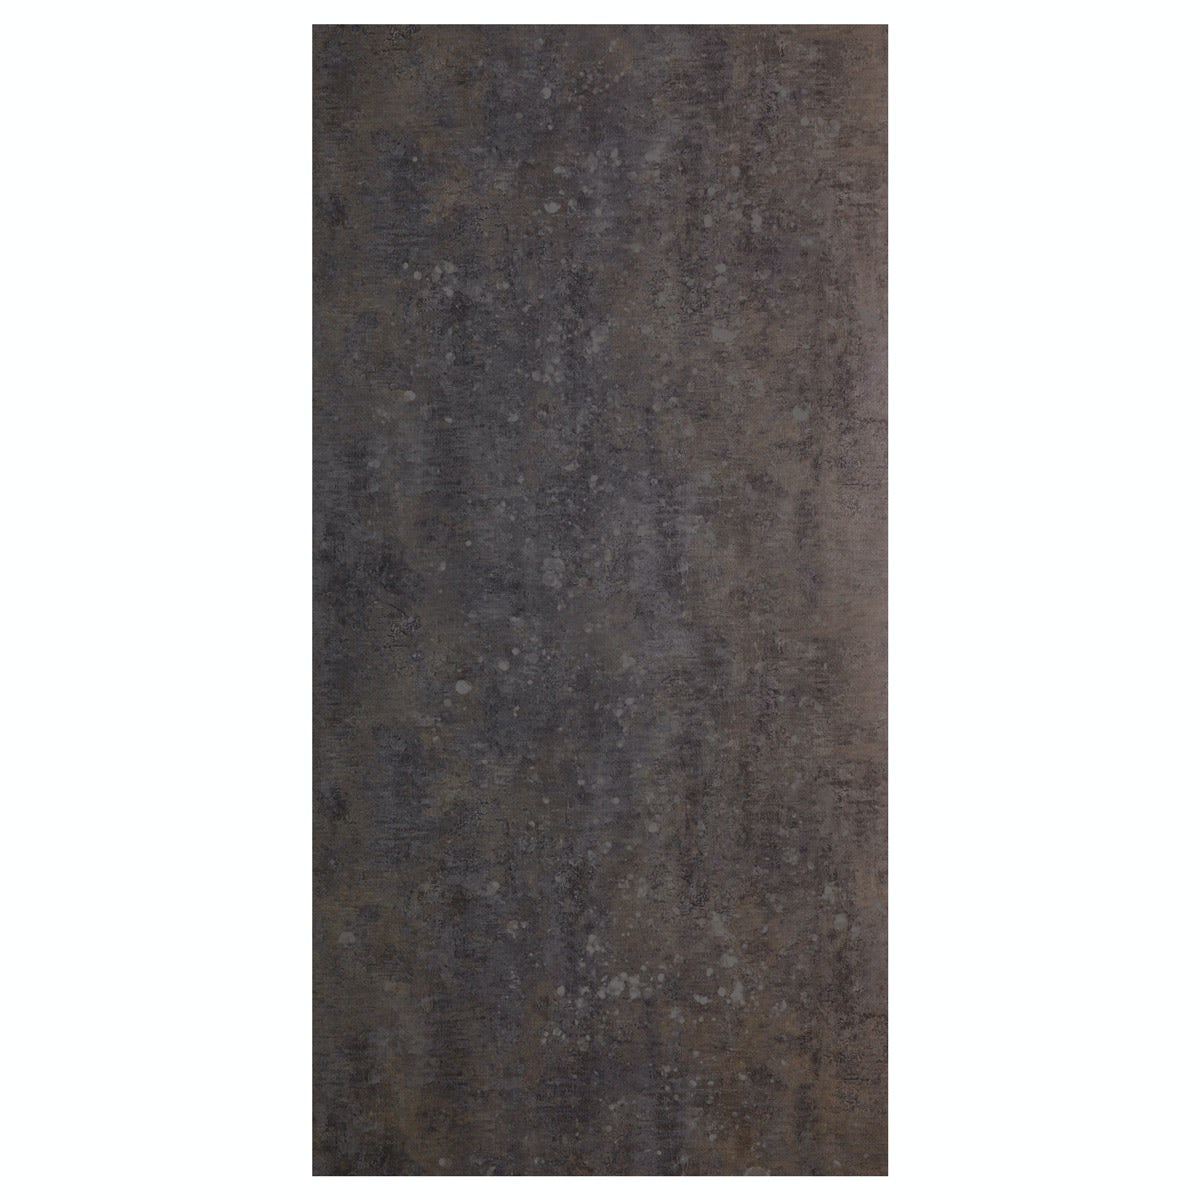 The Bath Co. Newbury ferro grey laminate worktop 1.5m